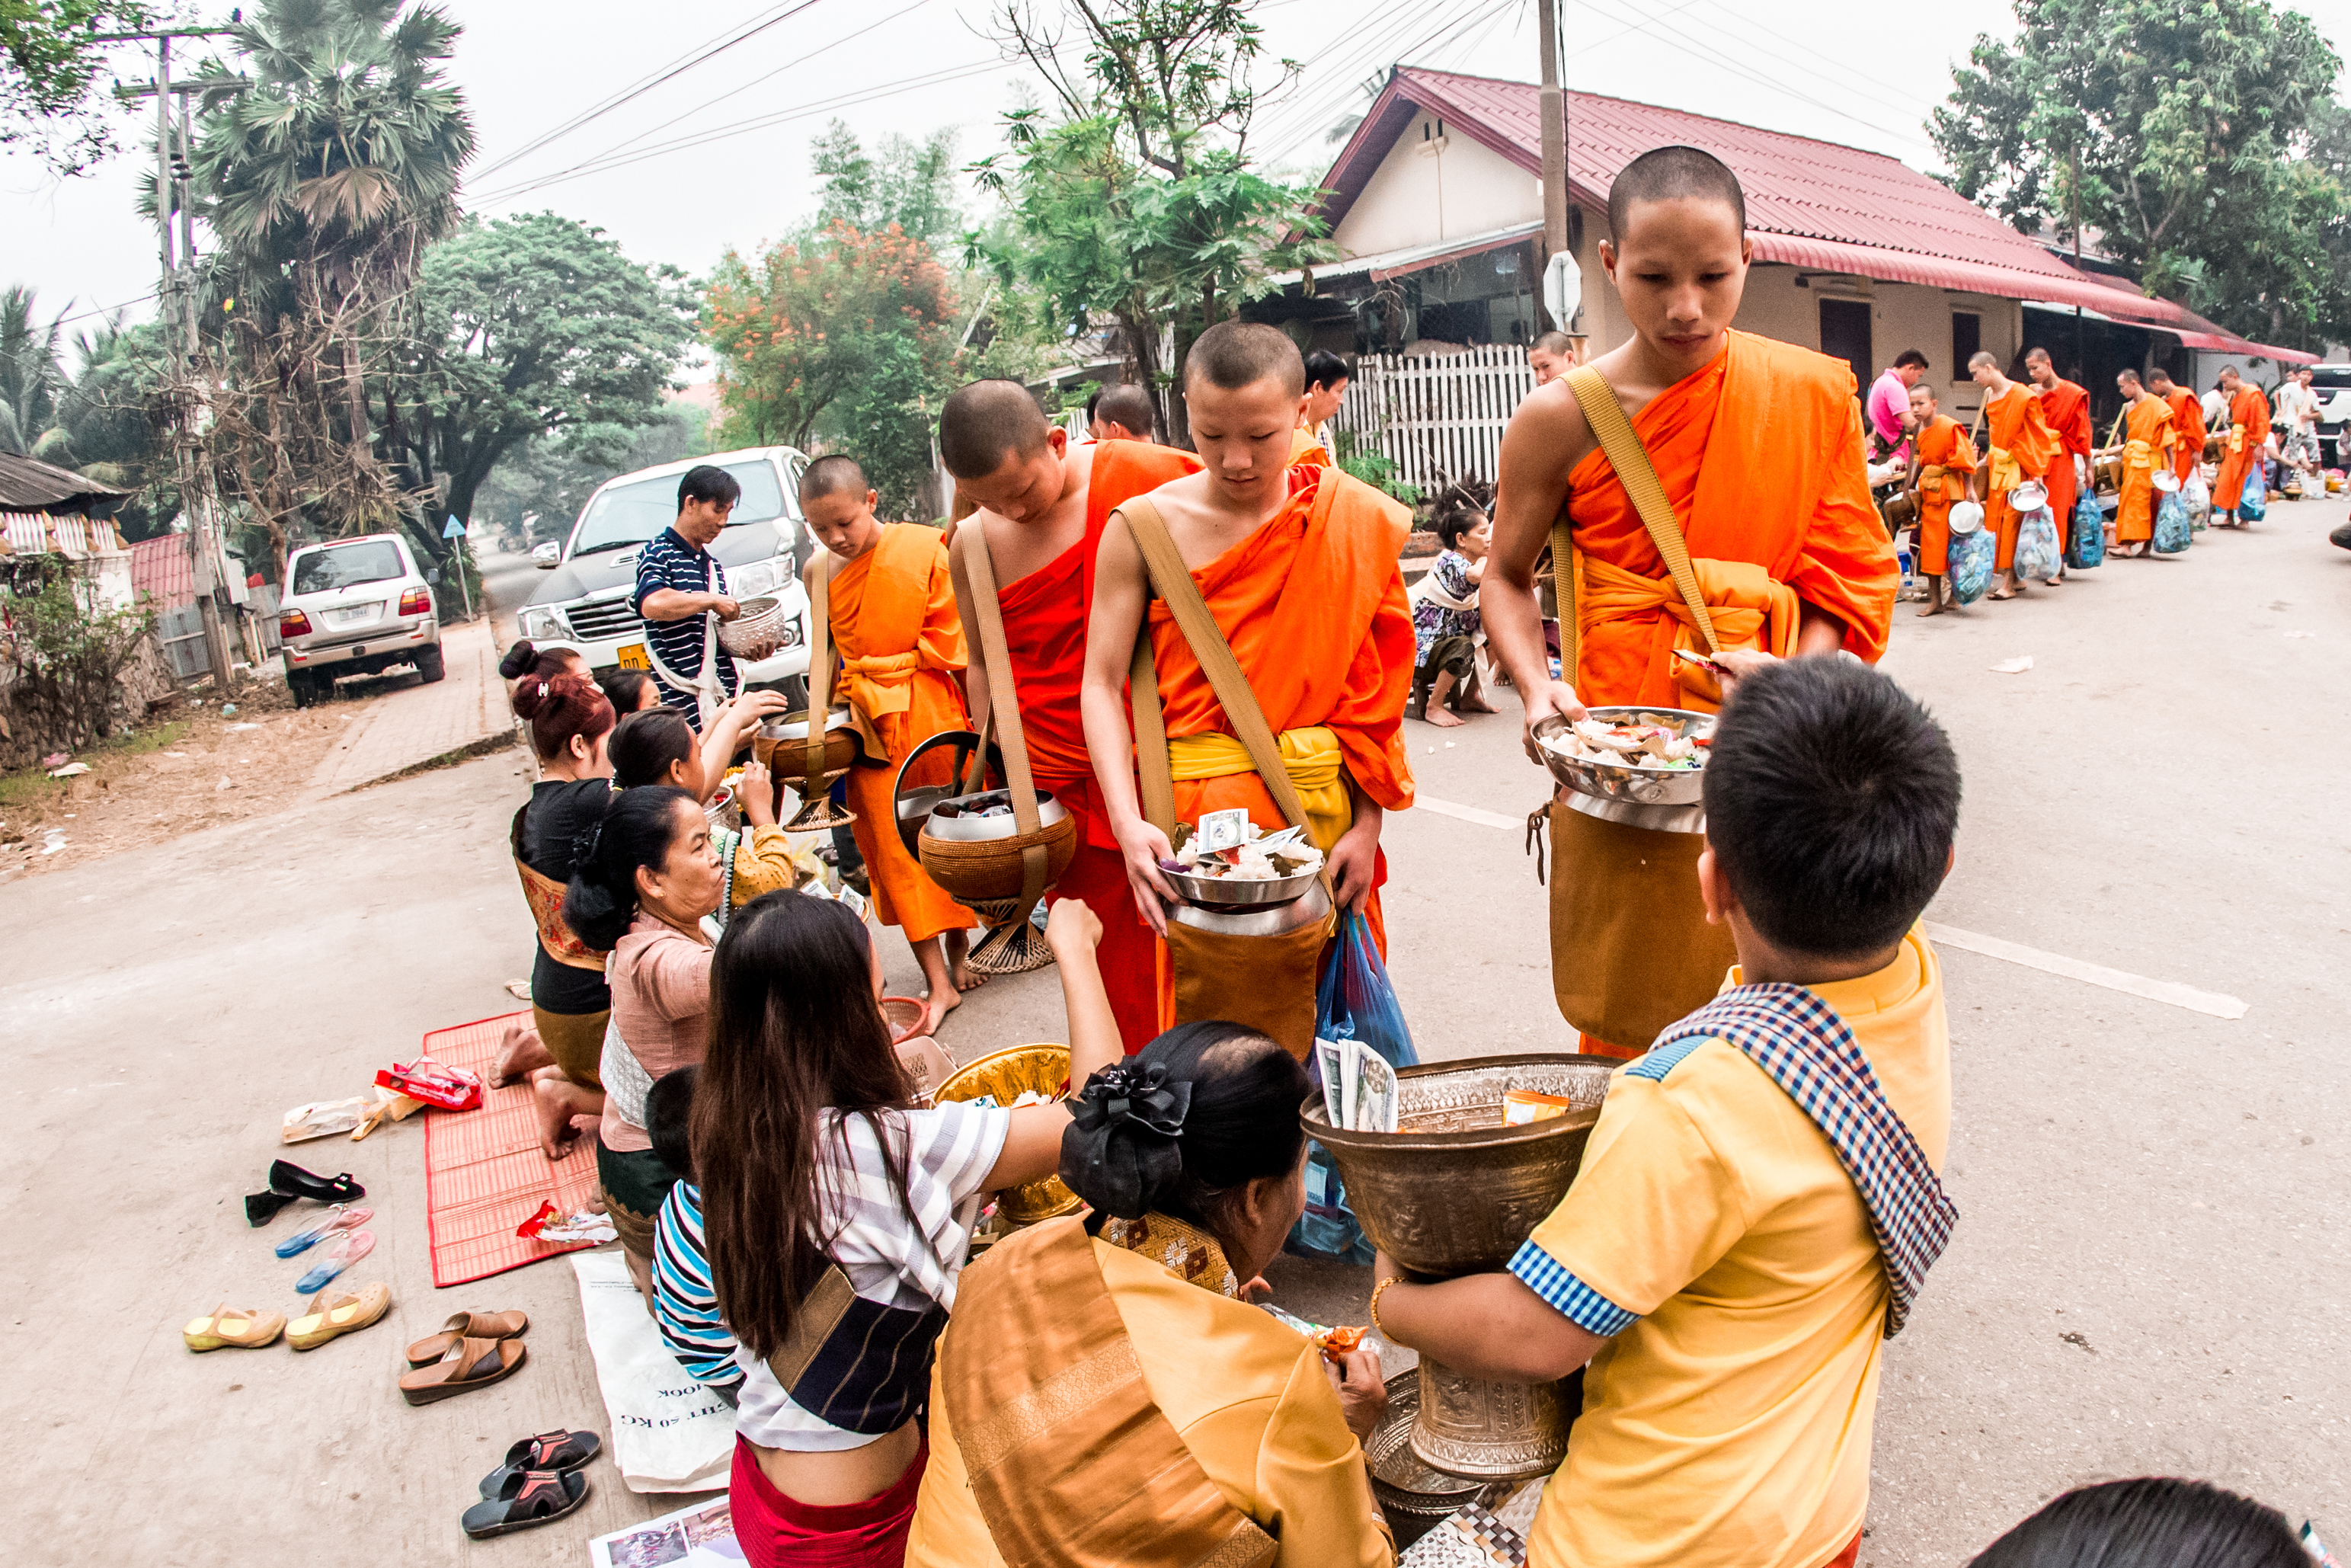 Monks at a morning gathering during the Songkran festival.